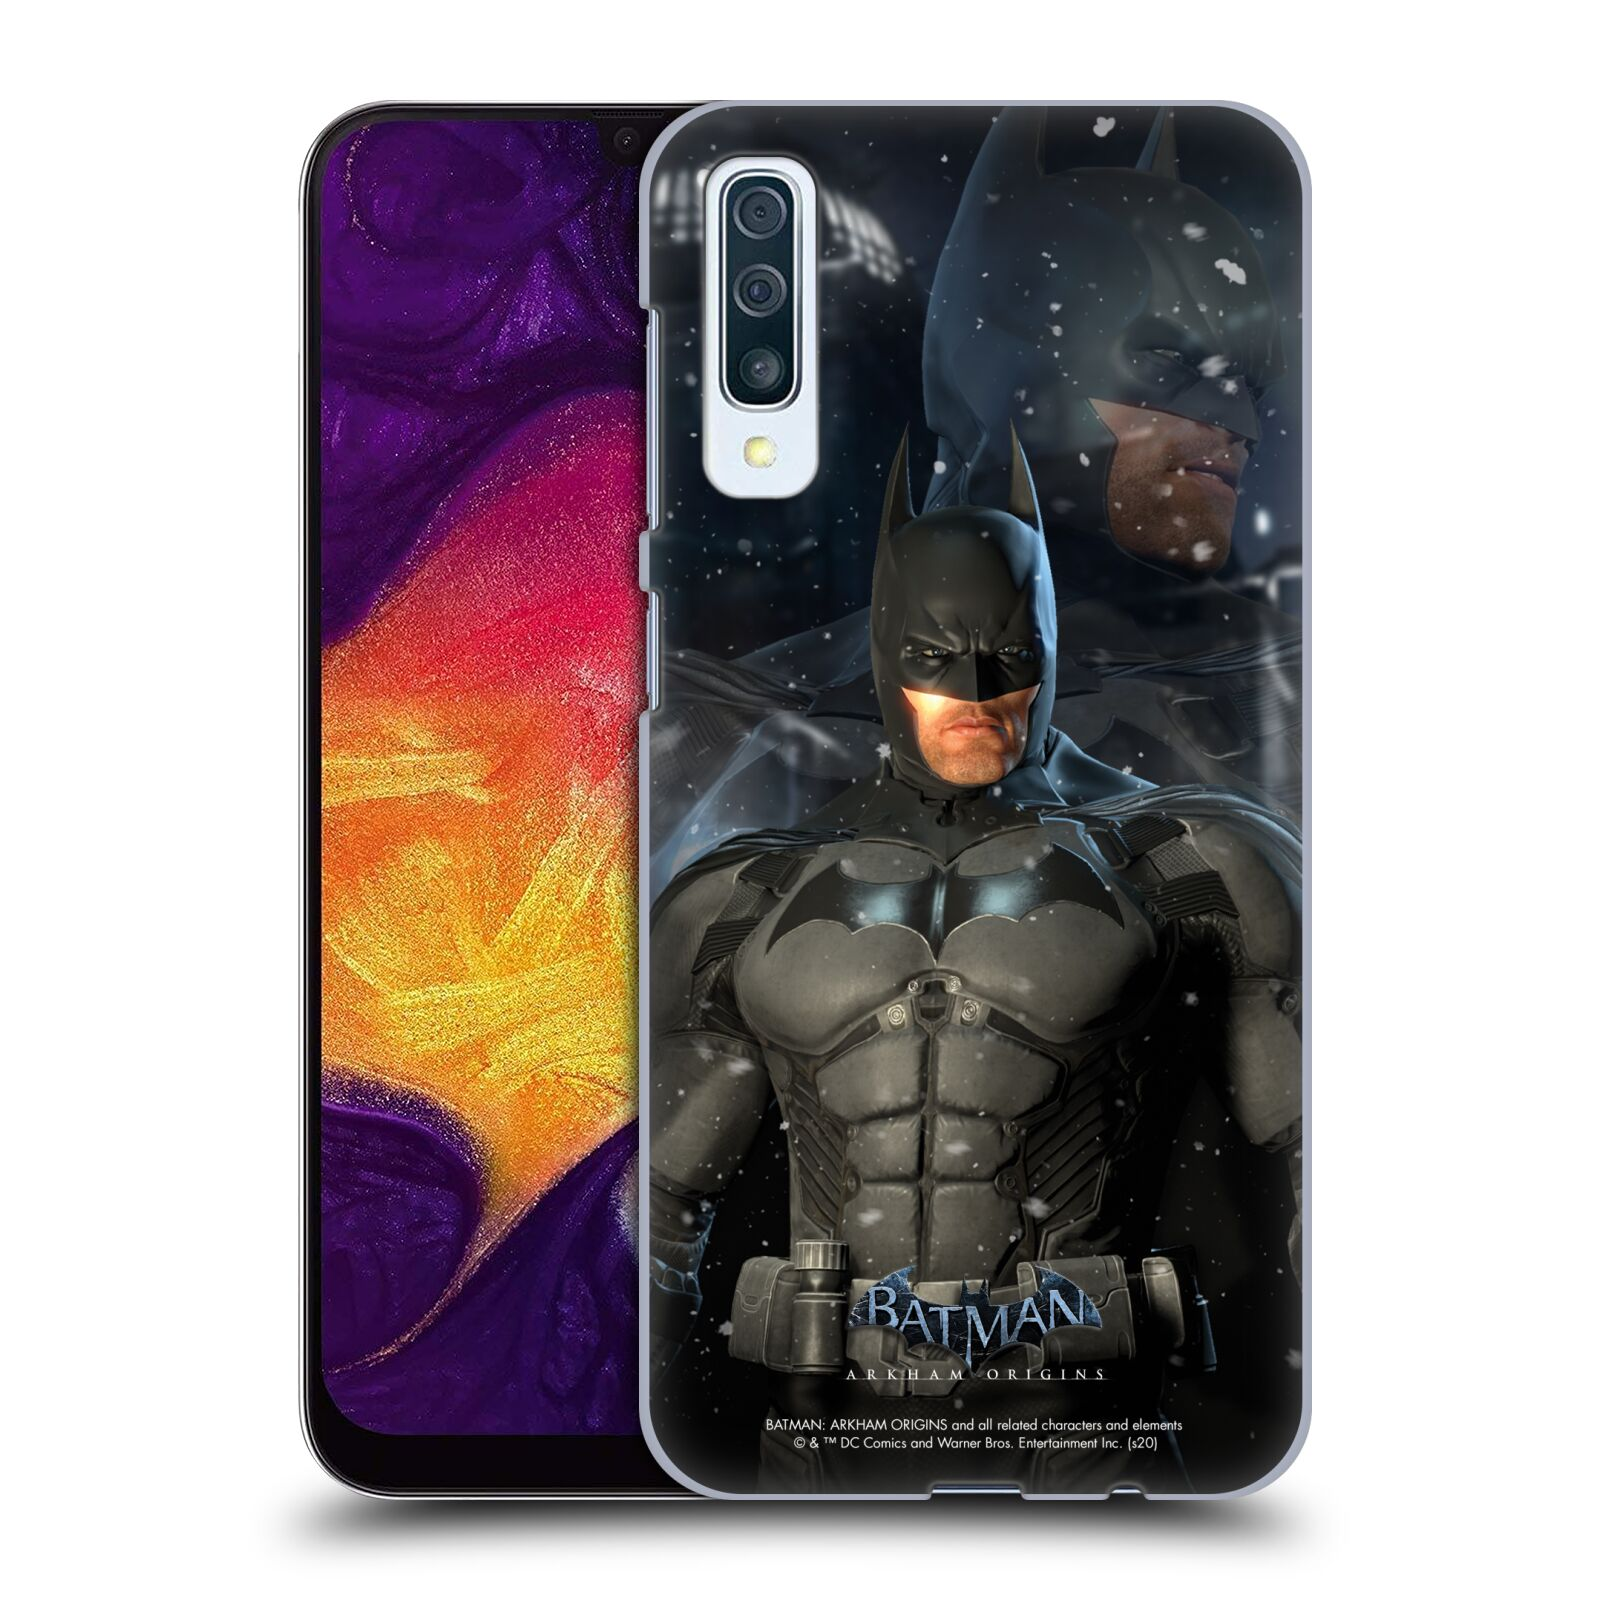 Official Batman: Arkham Origins Characters Batman Case for Samsung Galaxy A50s (2019)